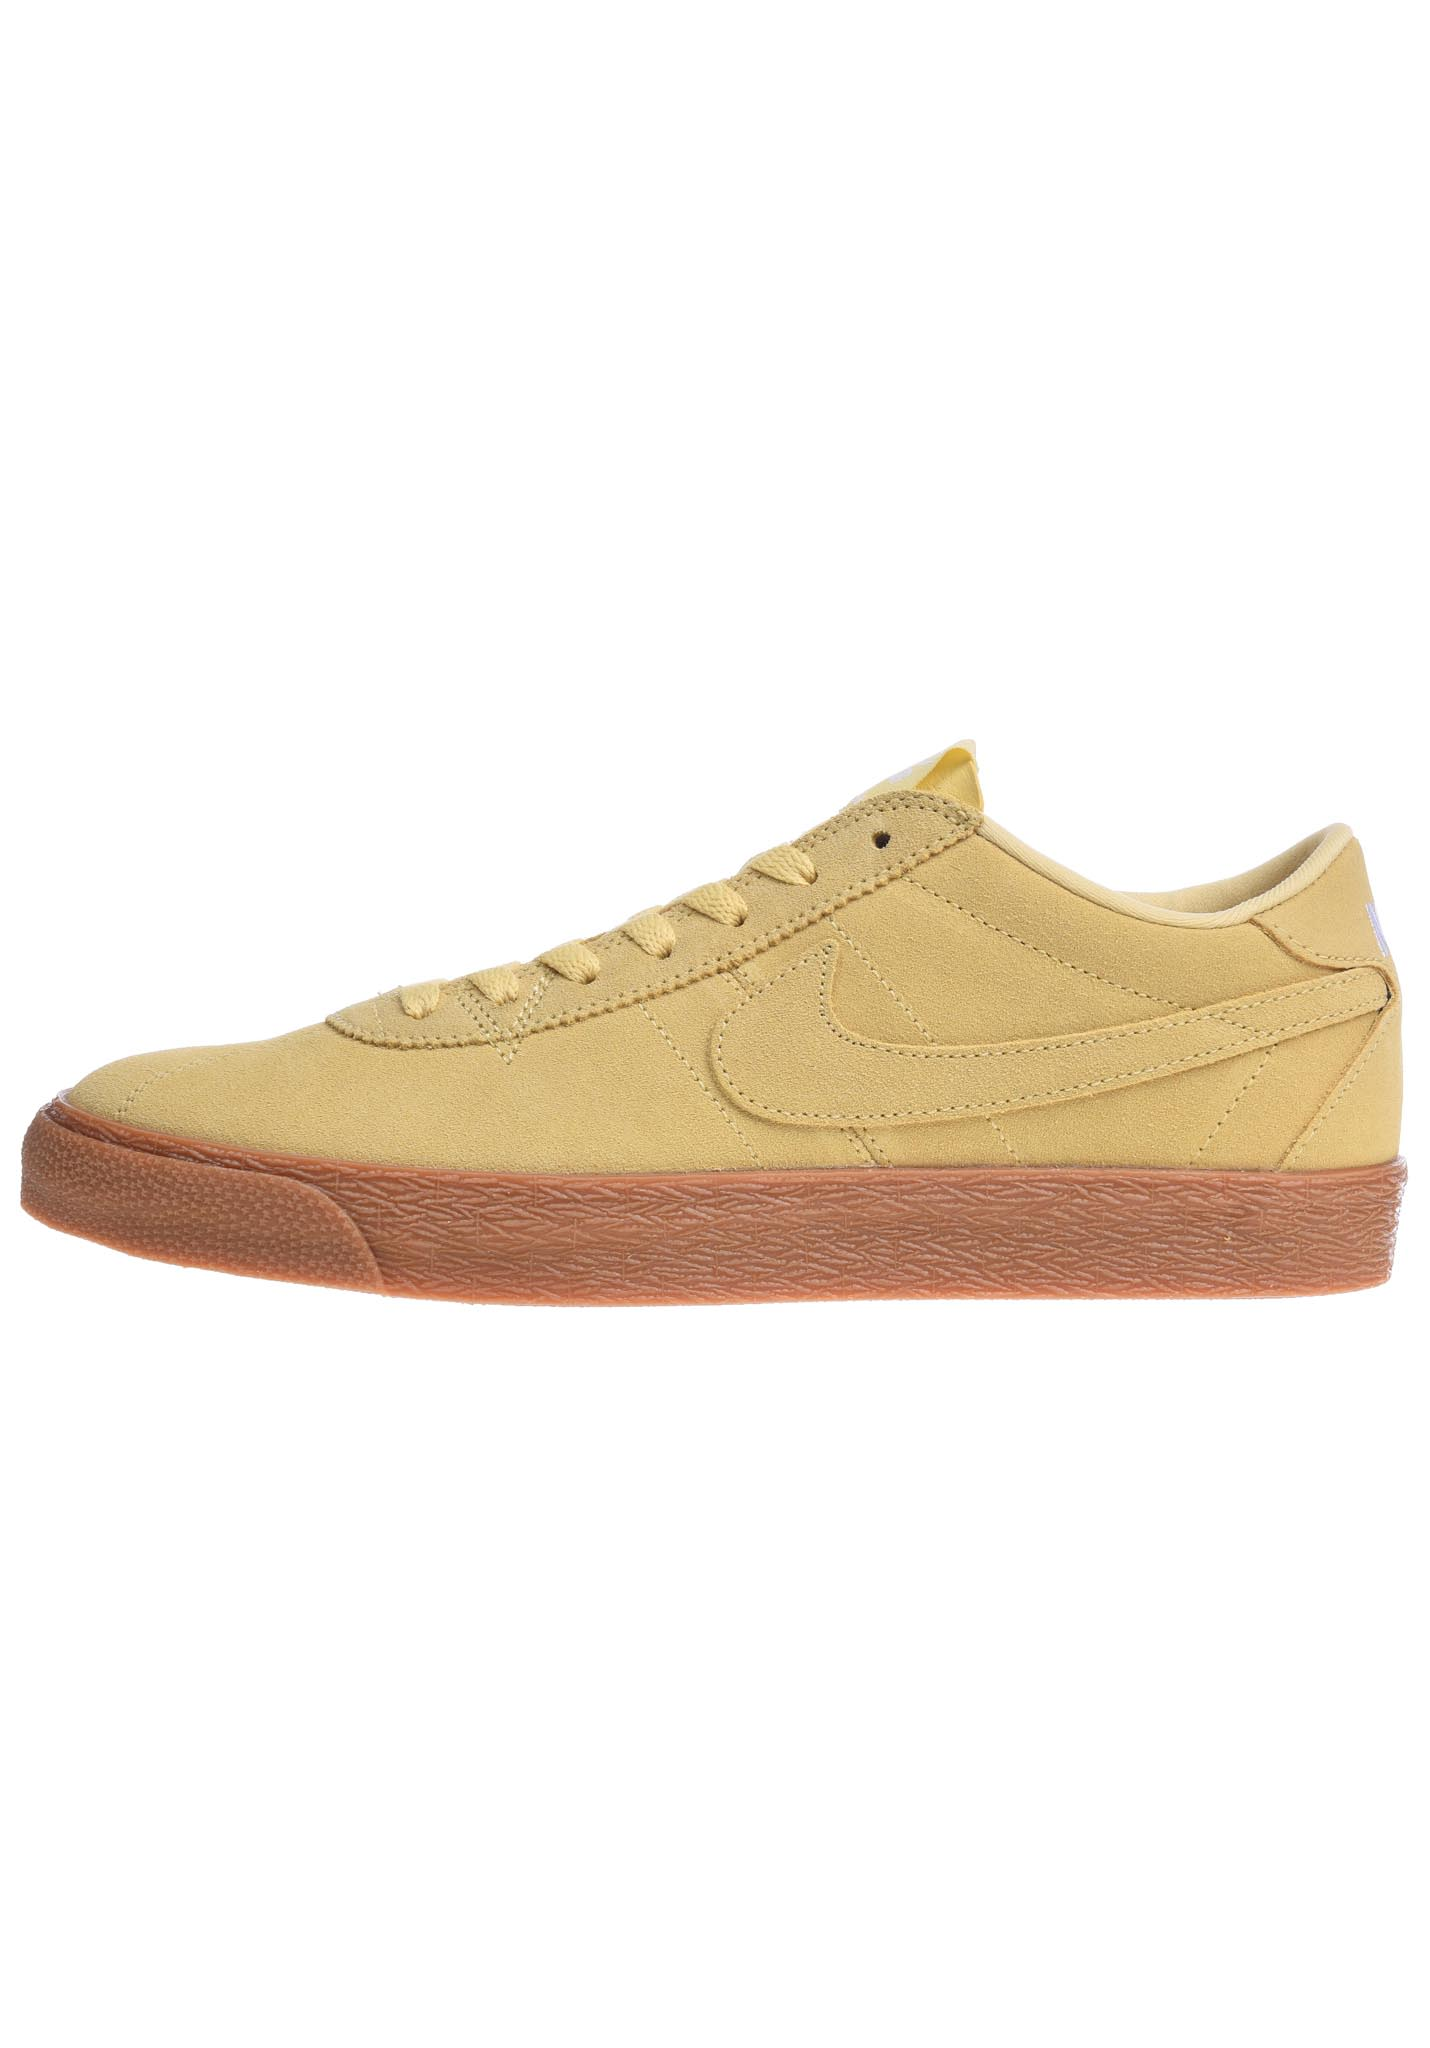 658edcdc7966 NIKE SB Bruin Zoom Premium SE - Sneakers for Men - Yellow - Planet Sports